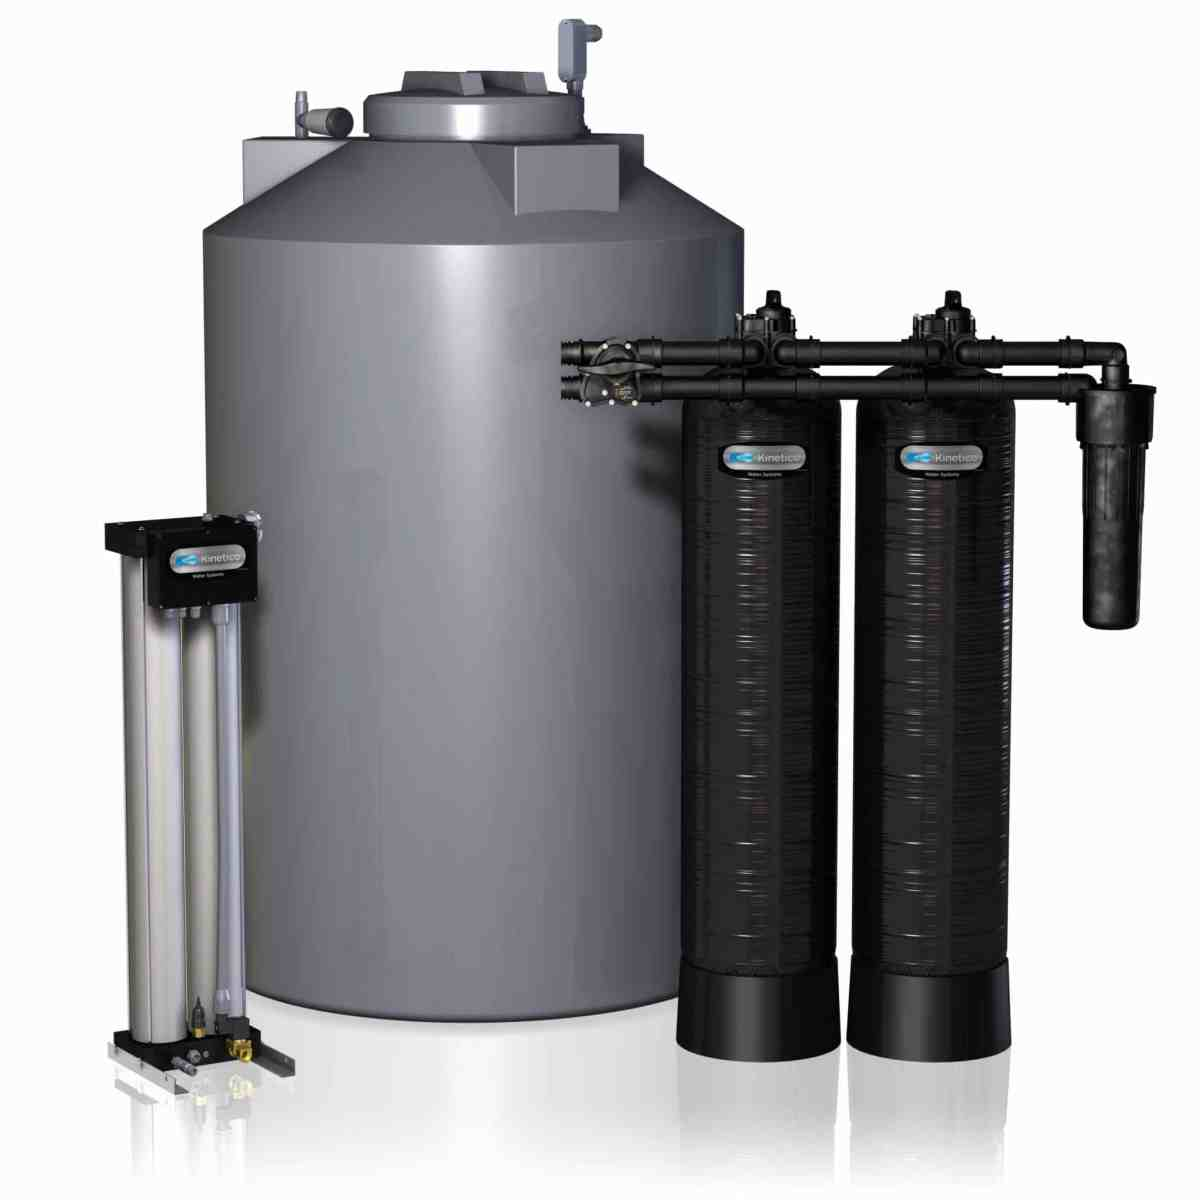 Kinetico water treatment system tanks